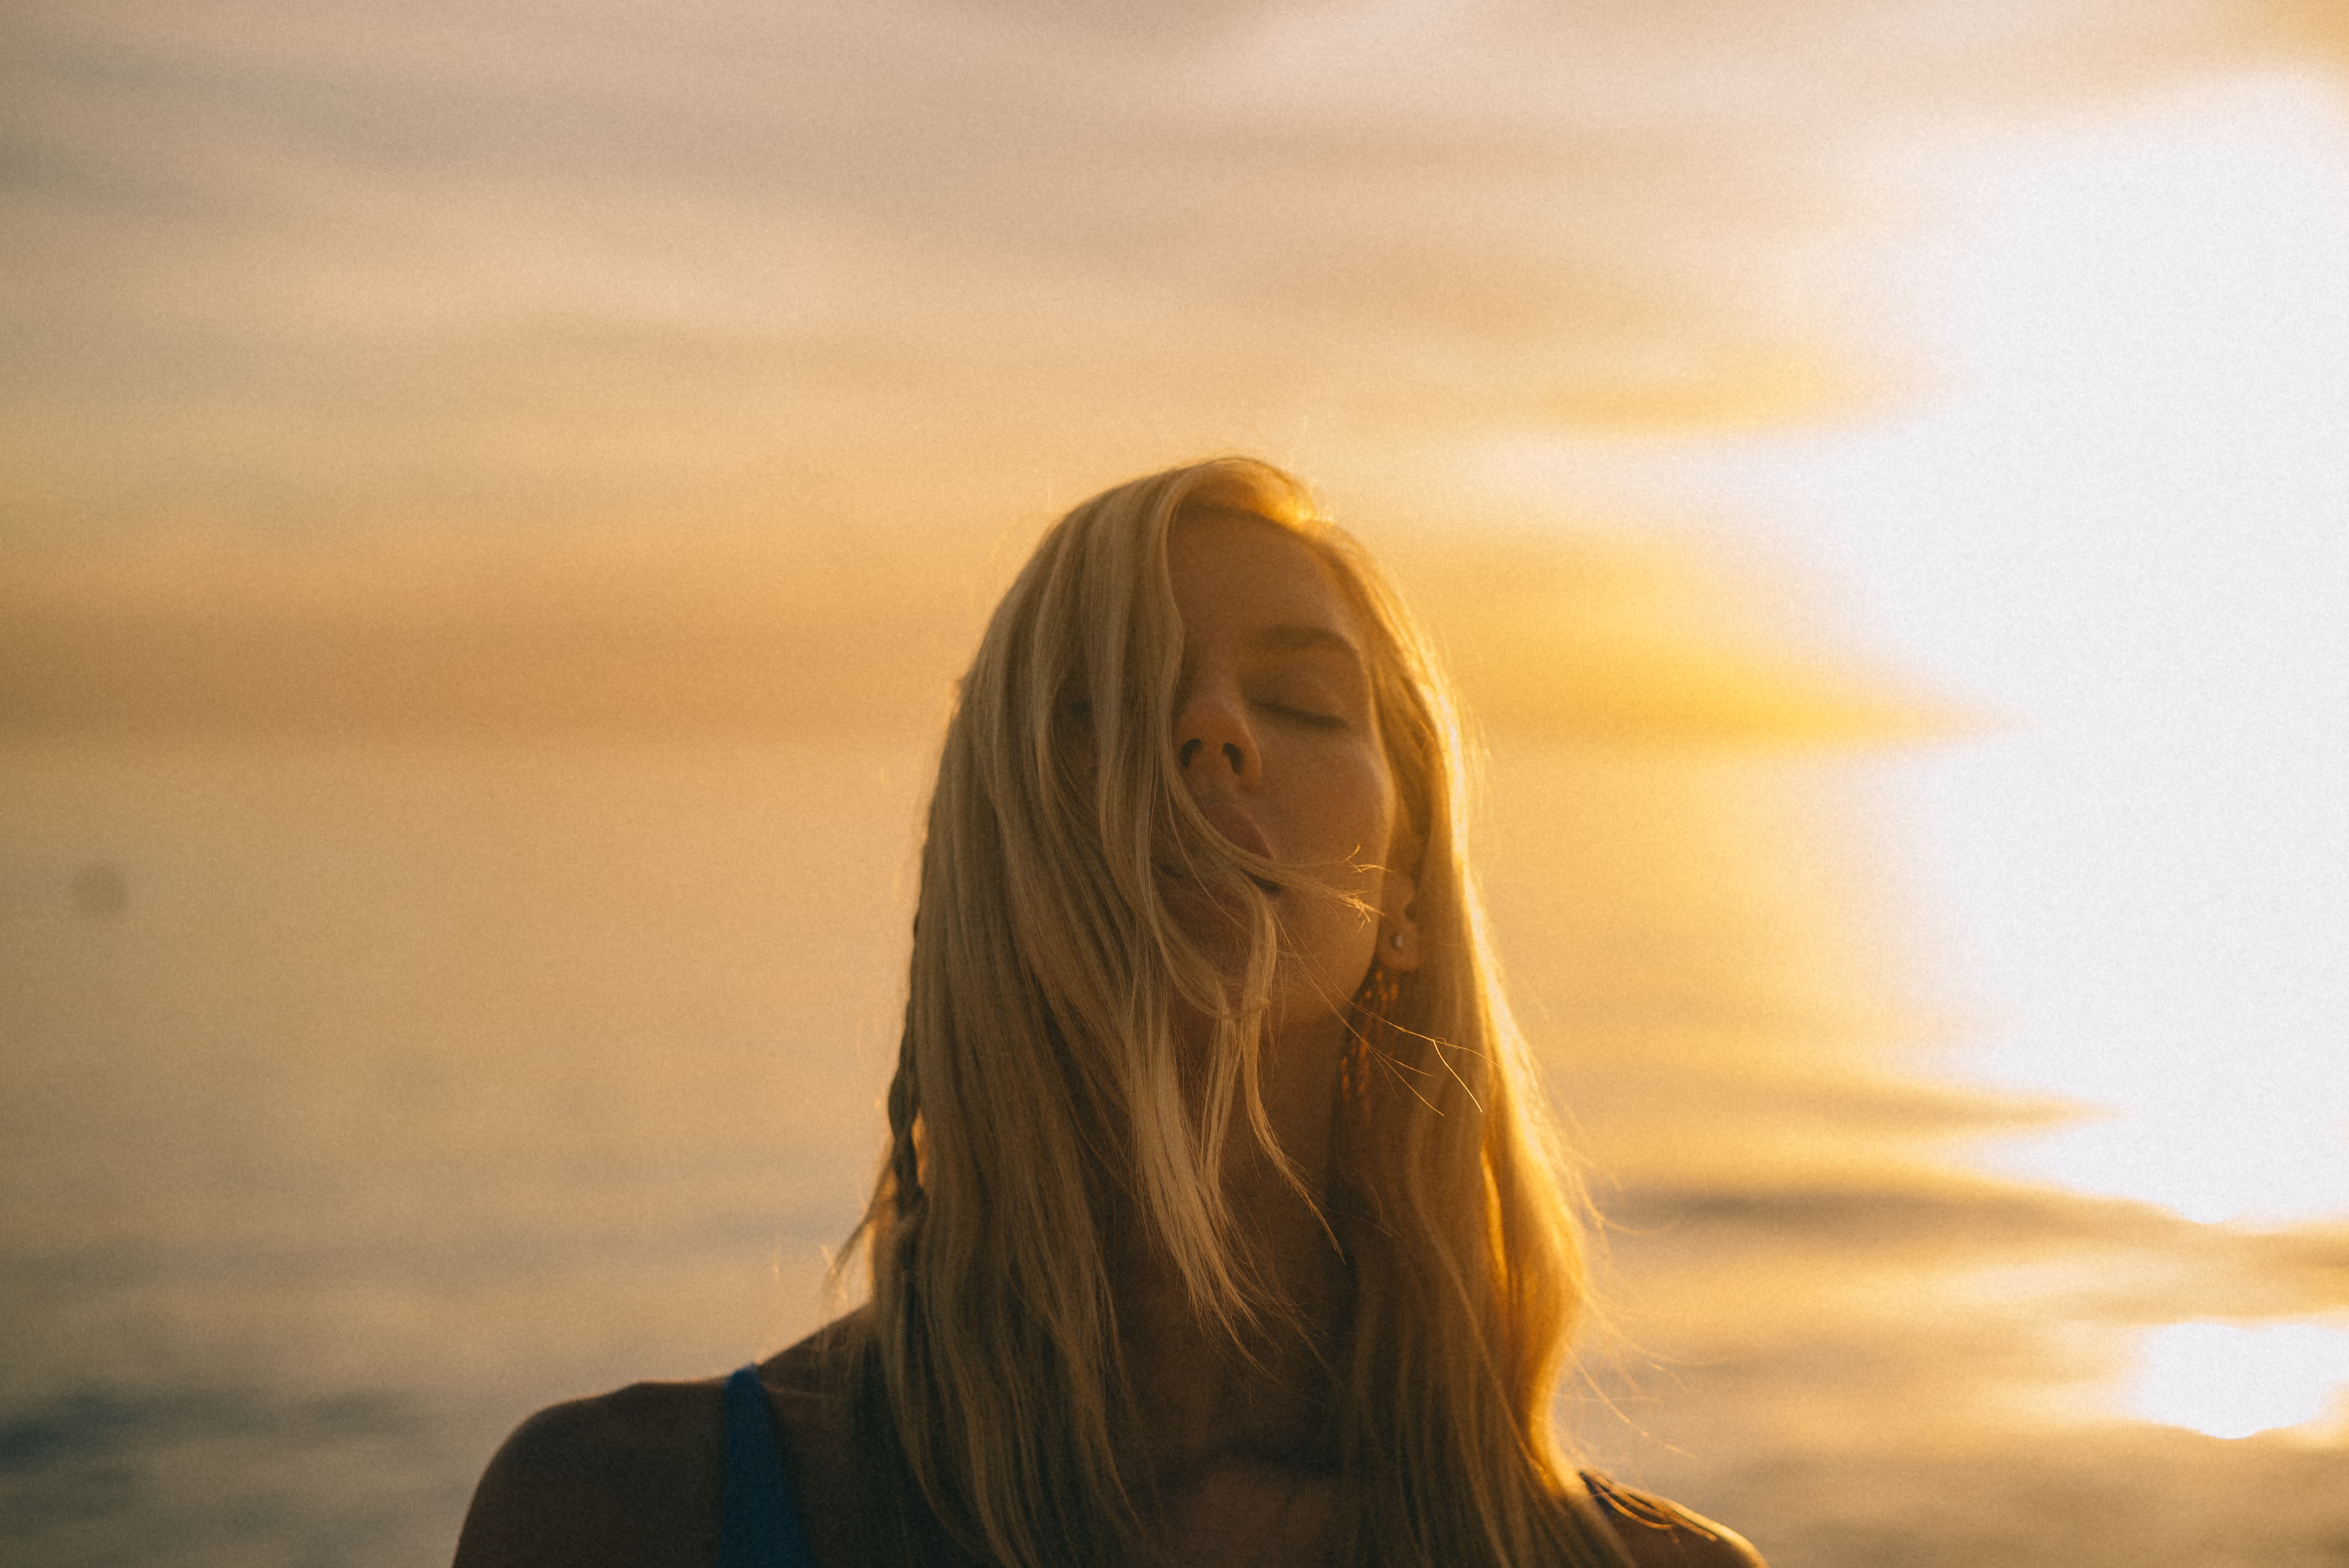 woman closing her eyes during golden hour